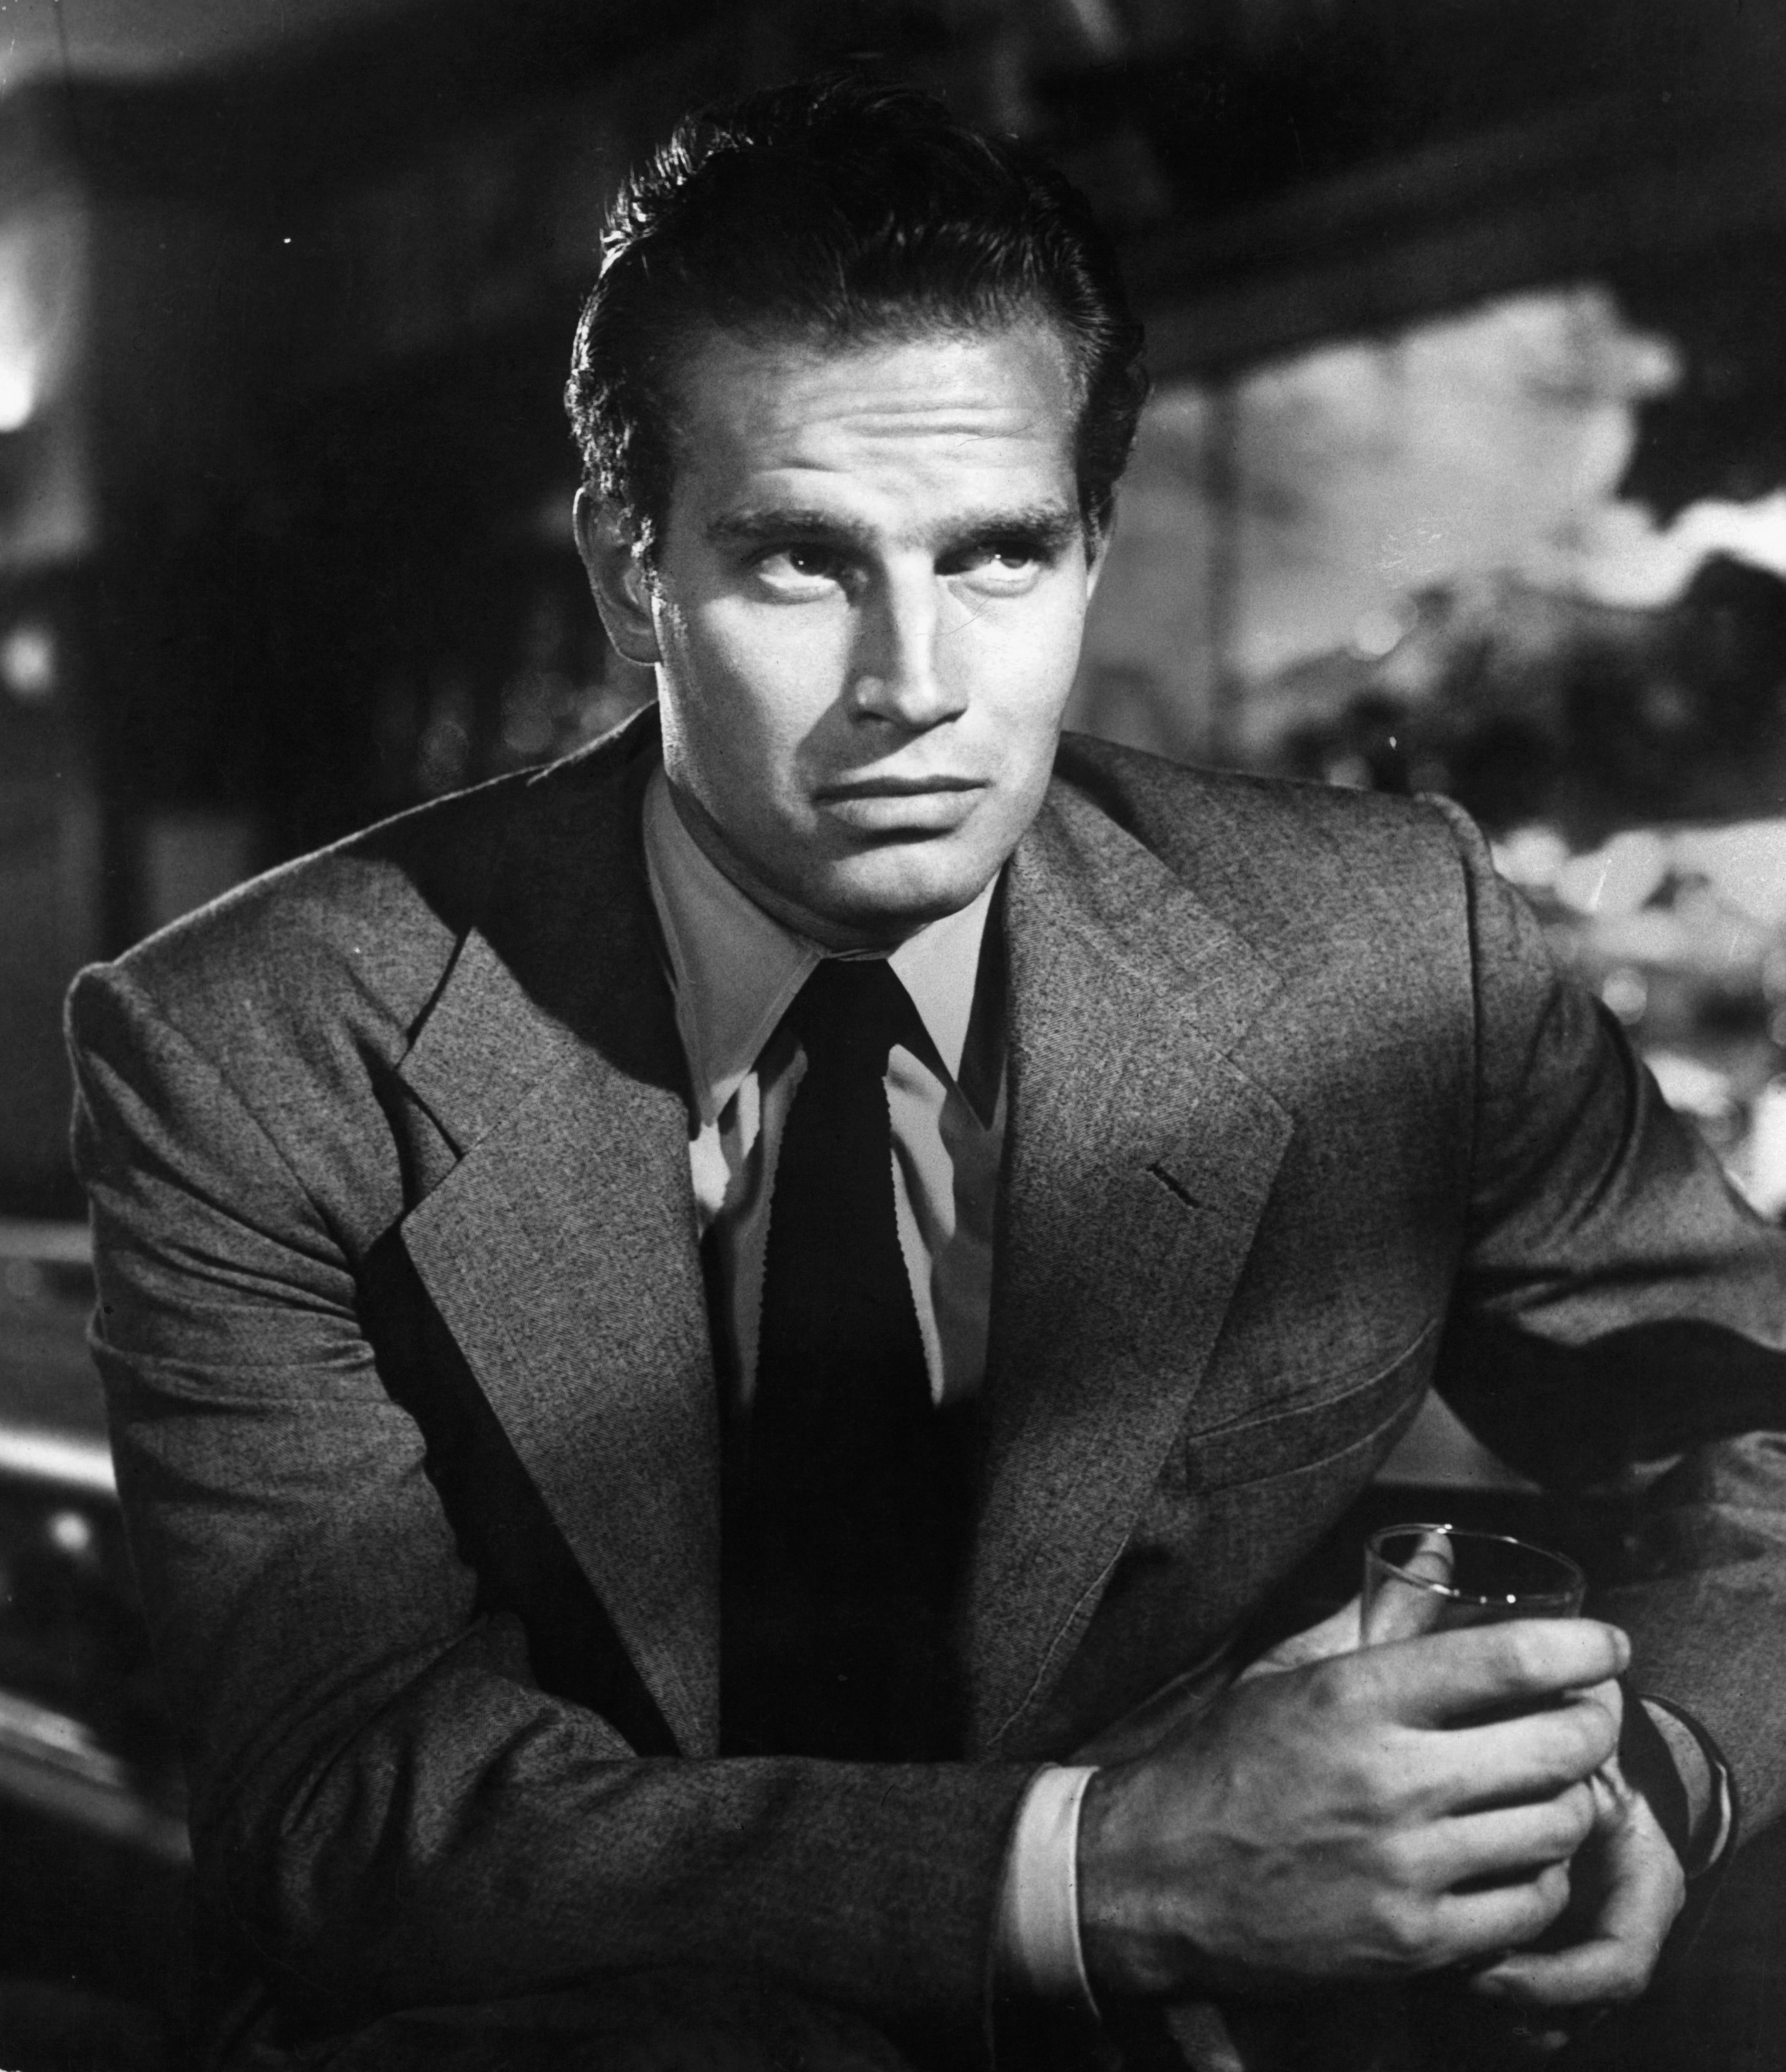 A photo of Charlton Heston holding a drink in a scene from the film 'Dark City', 1950 | Photo: Getty Images